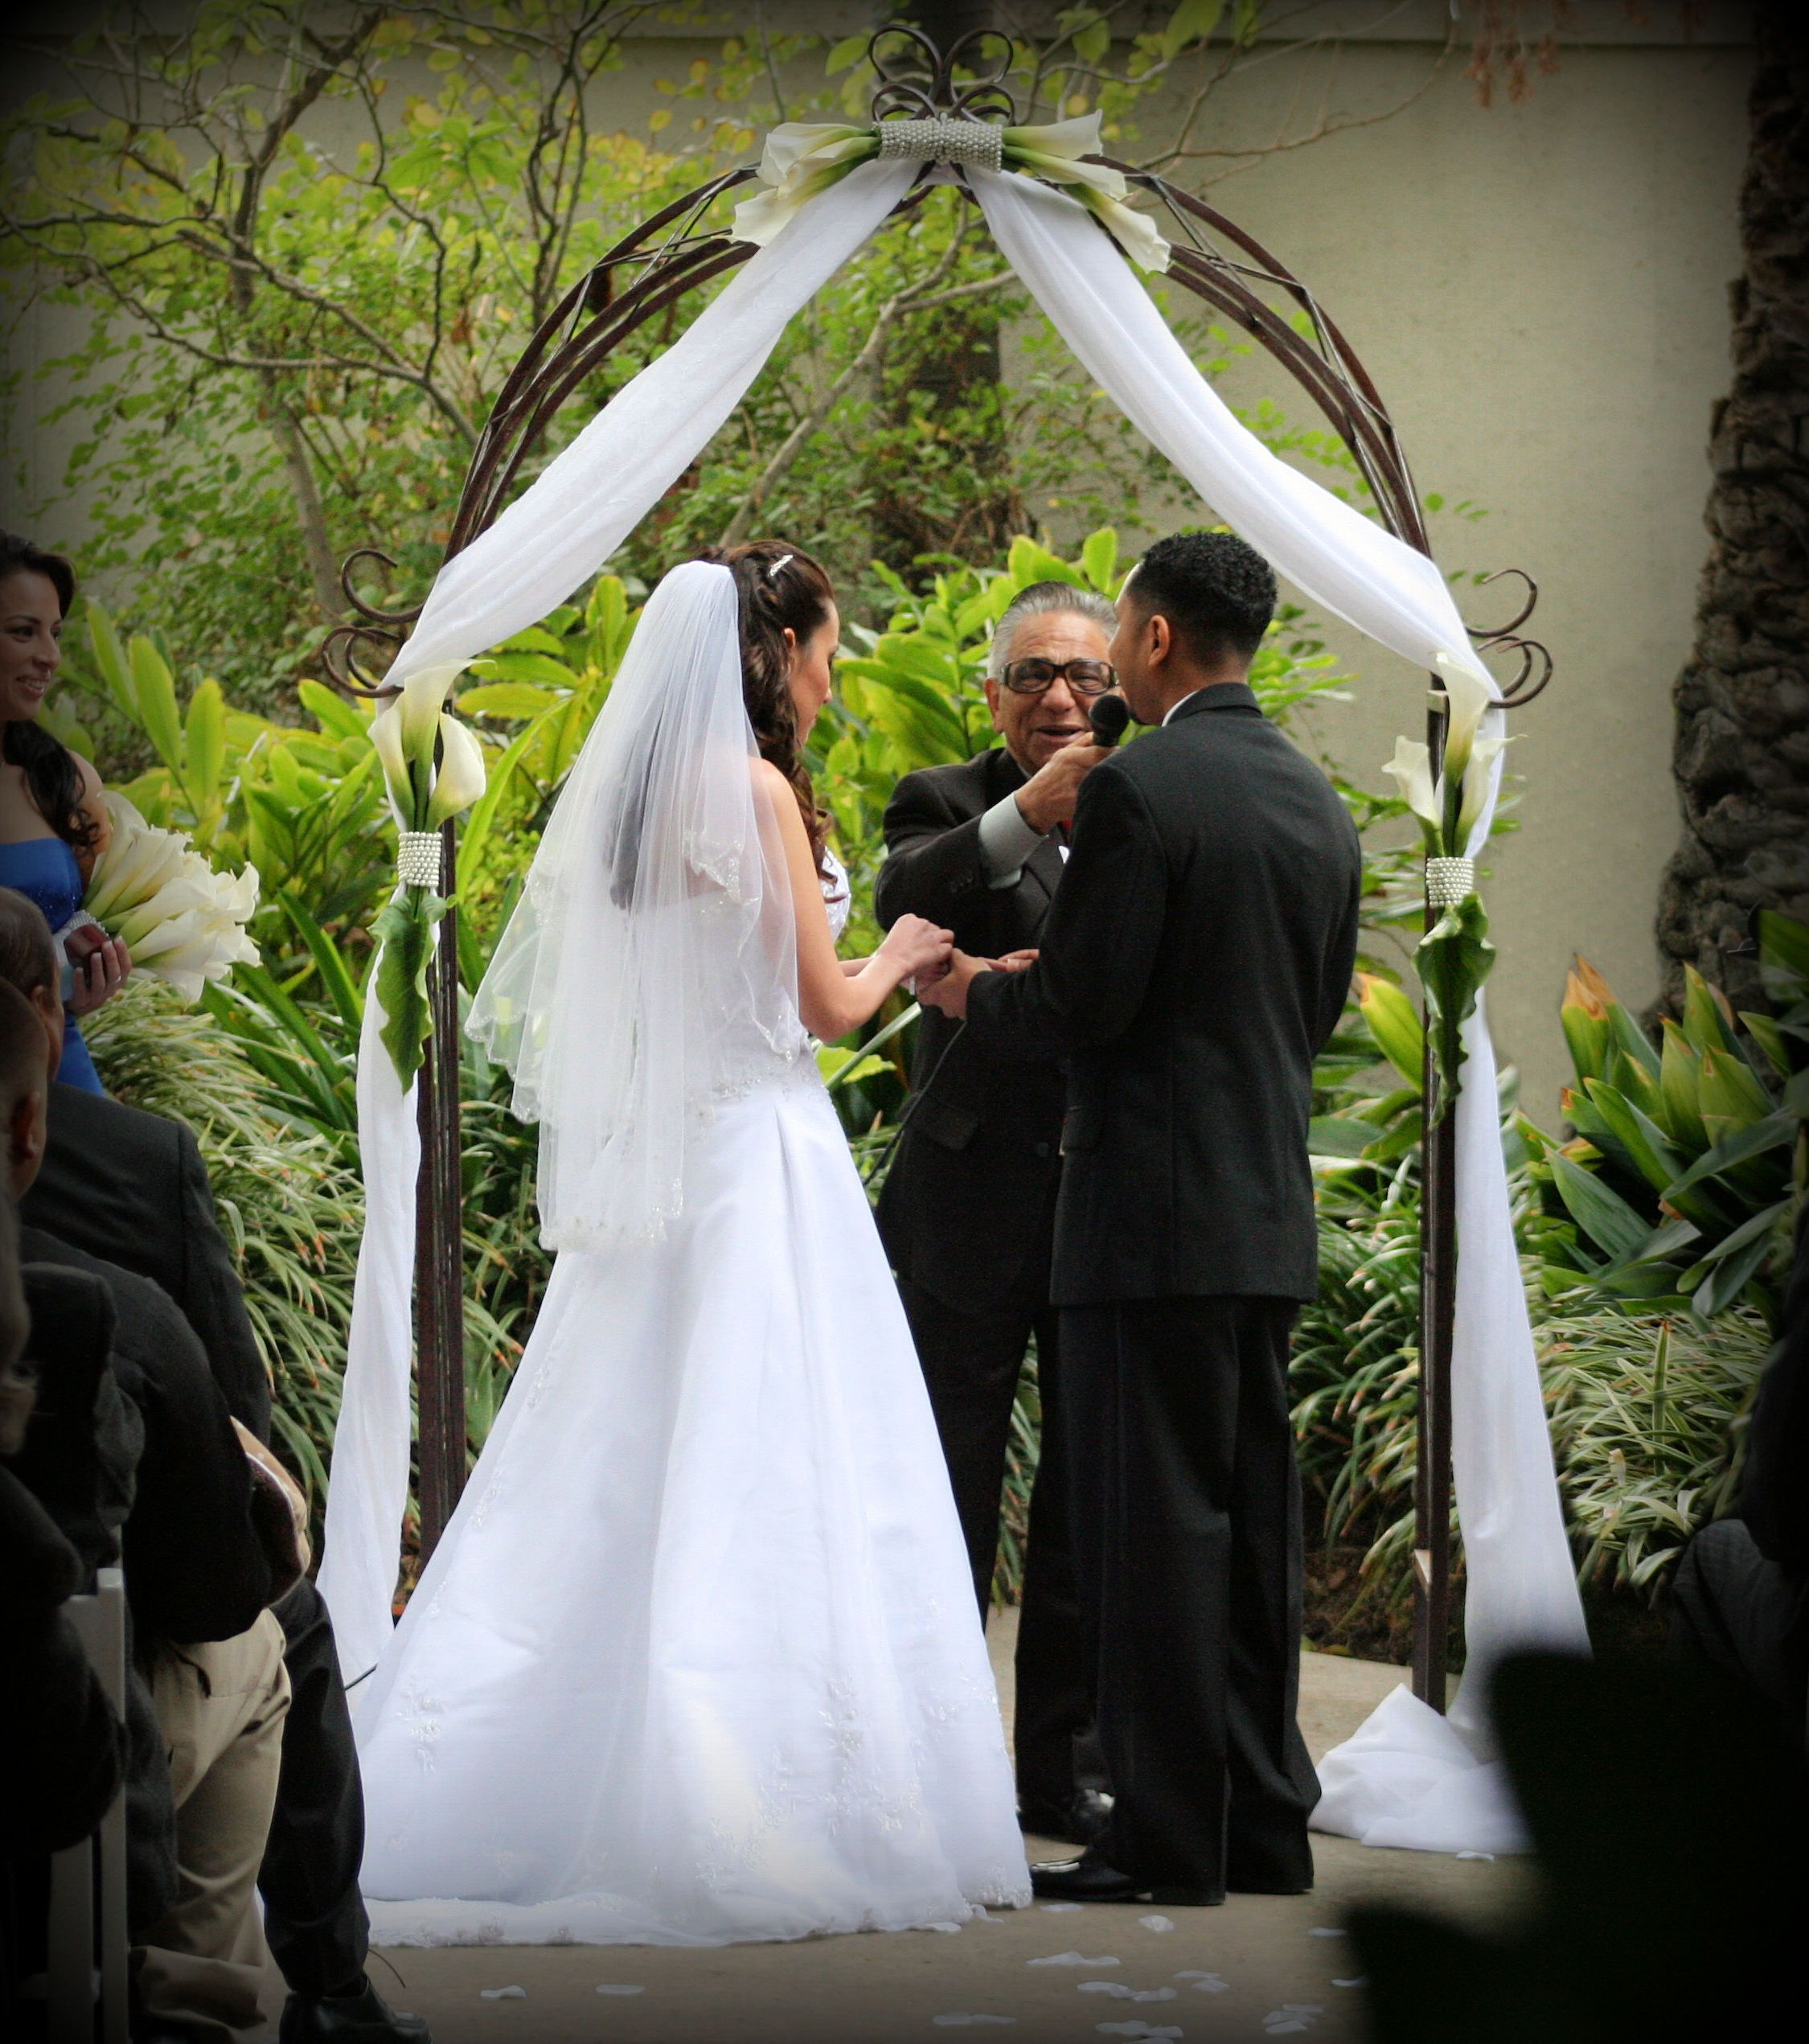 Wood Wedding Altar Canopy Rentals Los Angeles Orange: Decorating Our Wedding Arch - Weddingbee